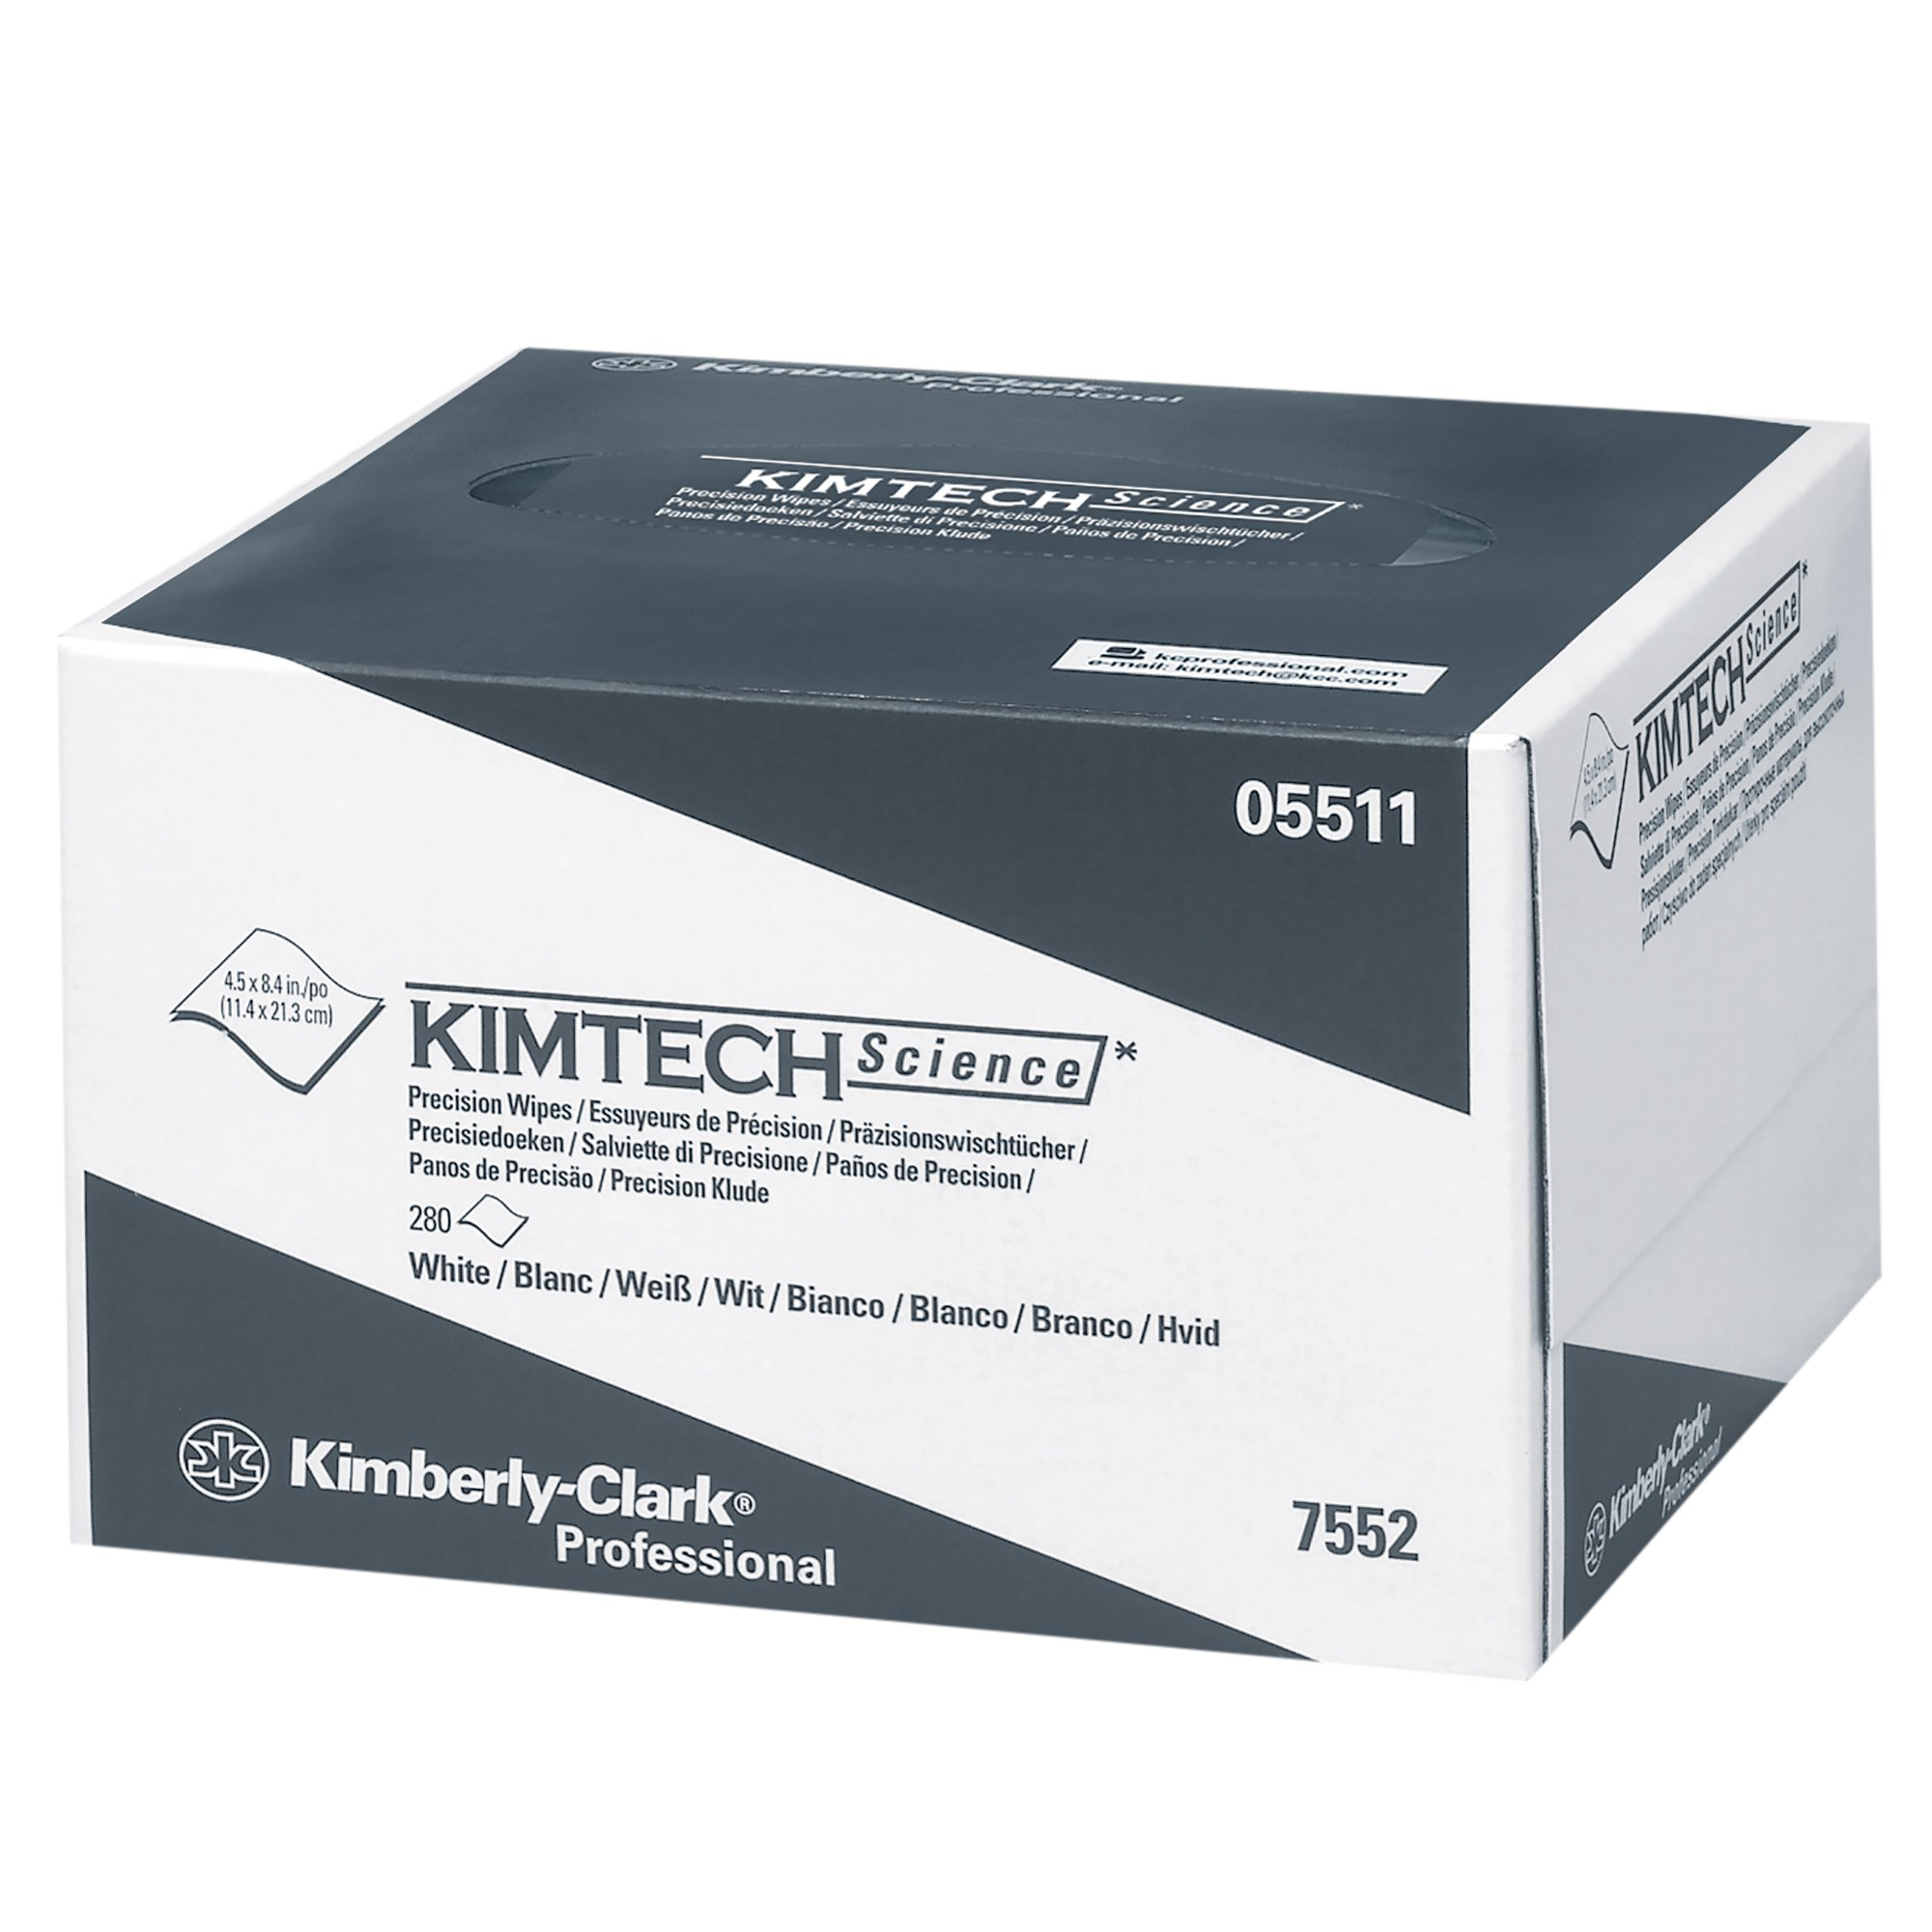 KIMTECH 05511 Science White Precision Wipes Tissue Wipers in a Pop-Up Box (60 Boxes per Case)